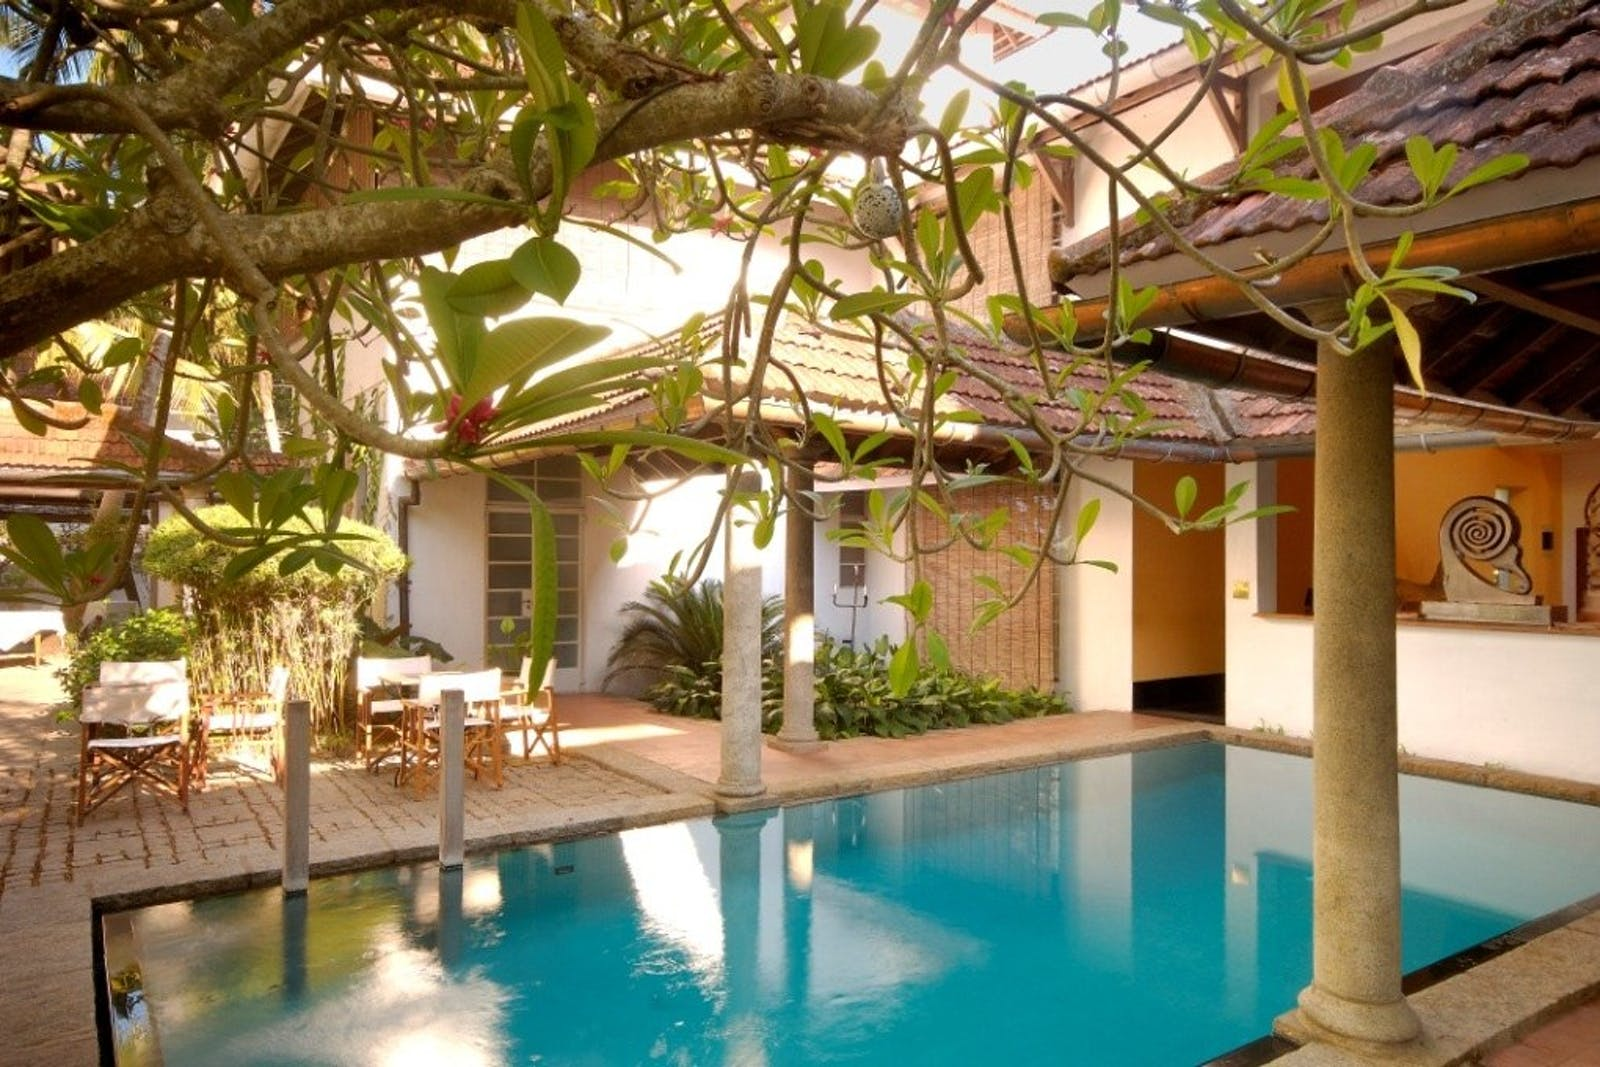 Malabar House pool and outside area